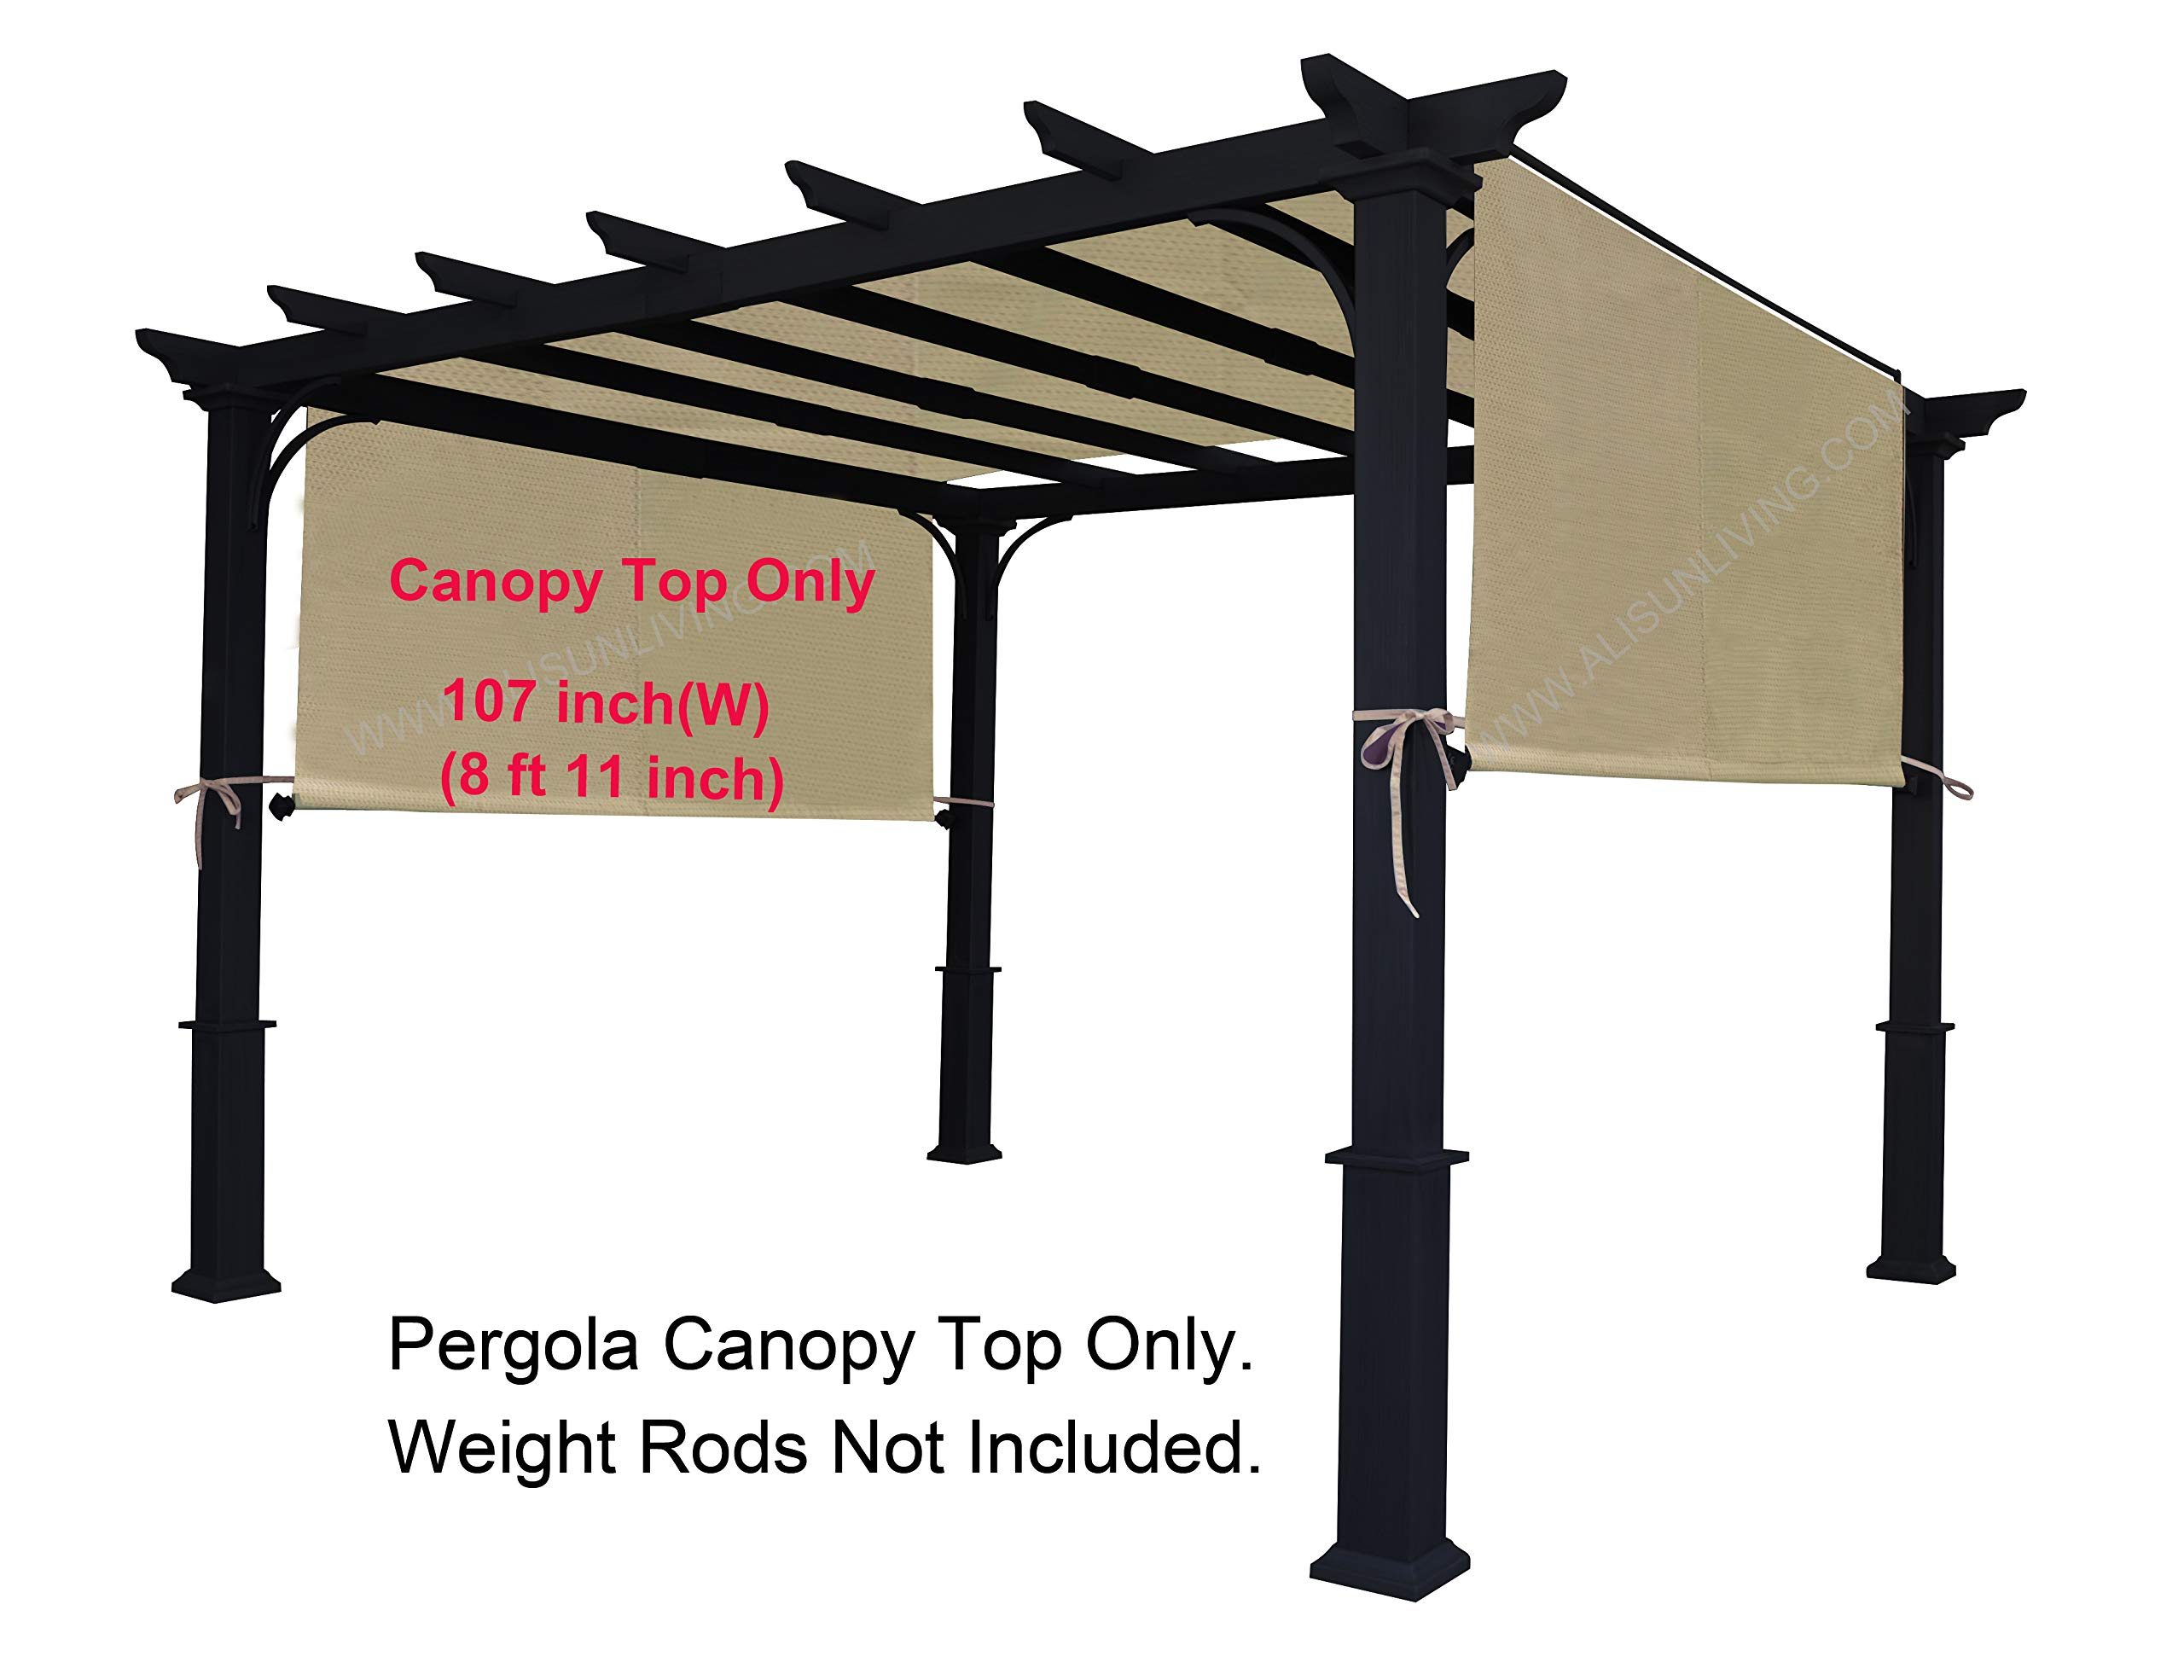 ALISUN Sling Canopy (with Ties) for The Lowe's Garden Treasures 10 FT Pergola #S-J-110 & TP15-048C (Beige)